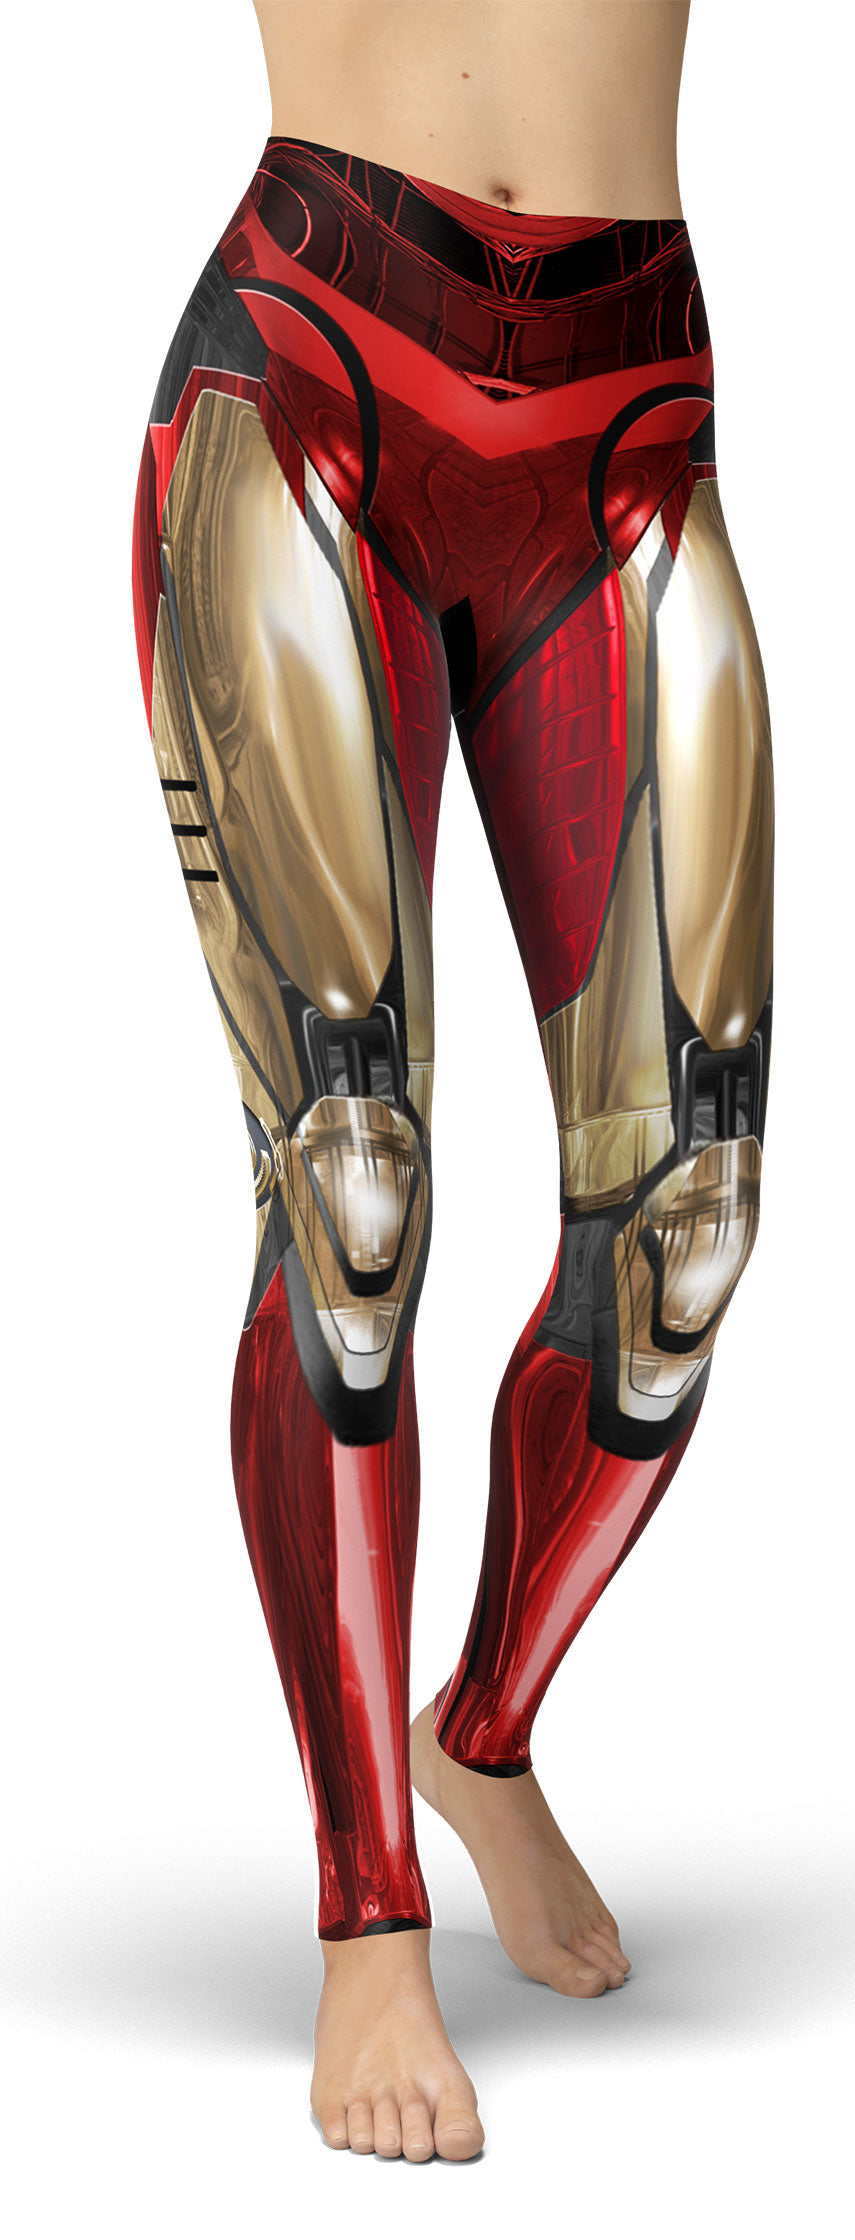 Avengers: Endgame Ironman Leggings